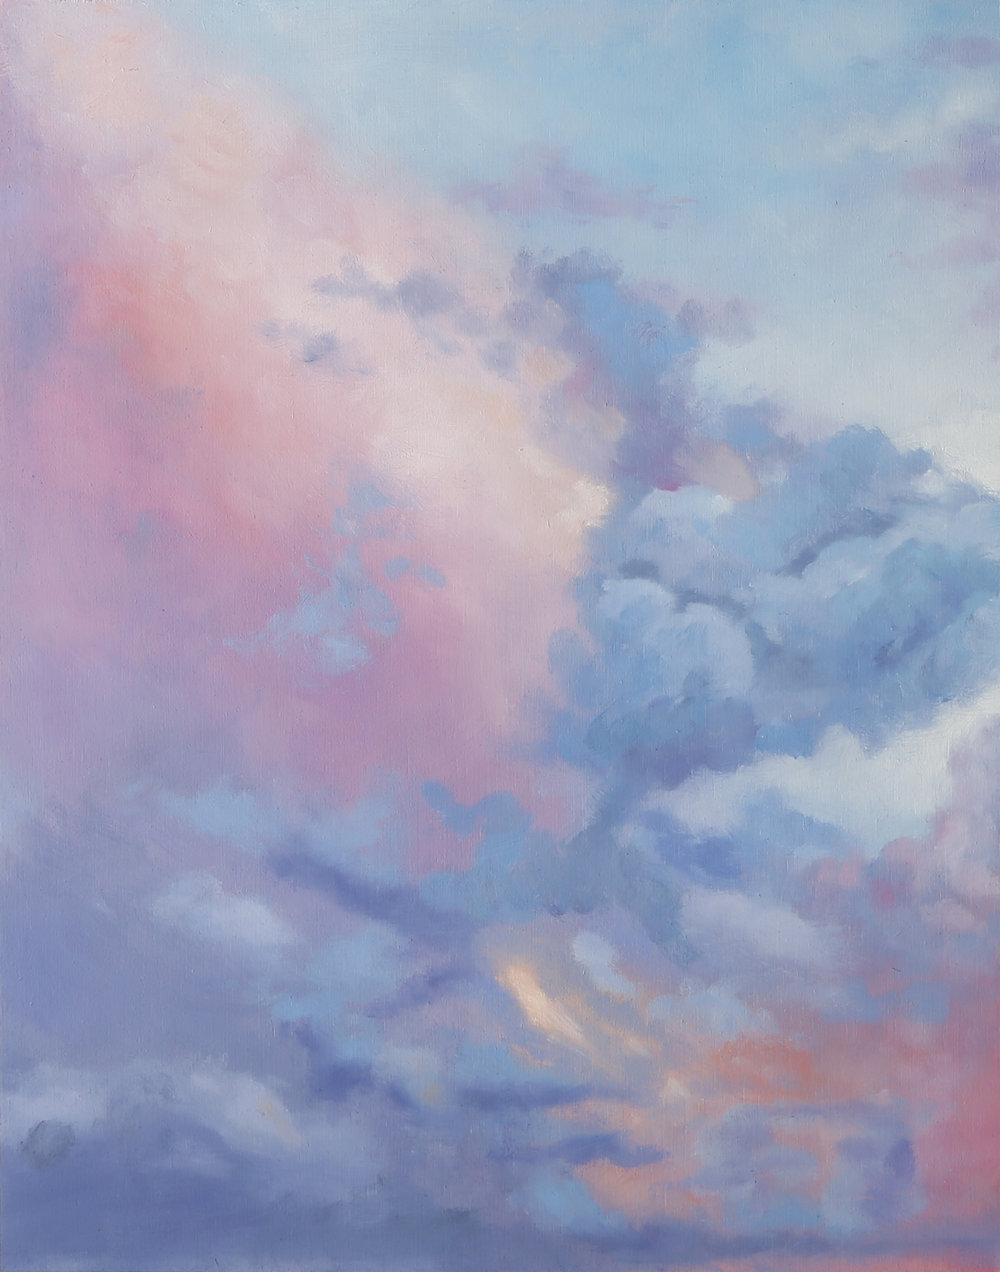 Angelite Skies, 2018, Oil on wood panel